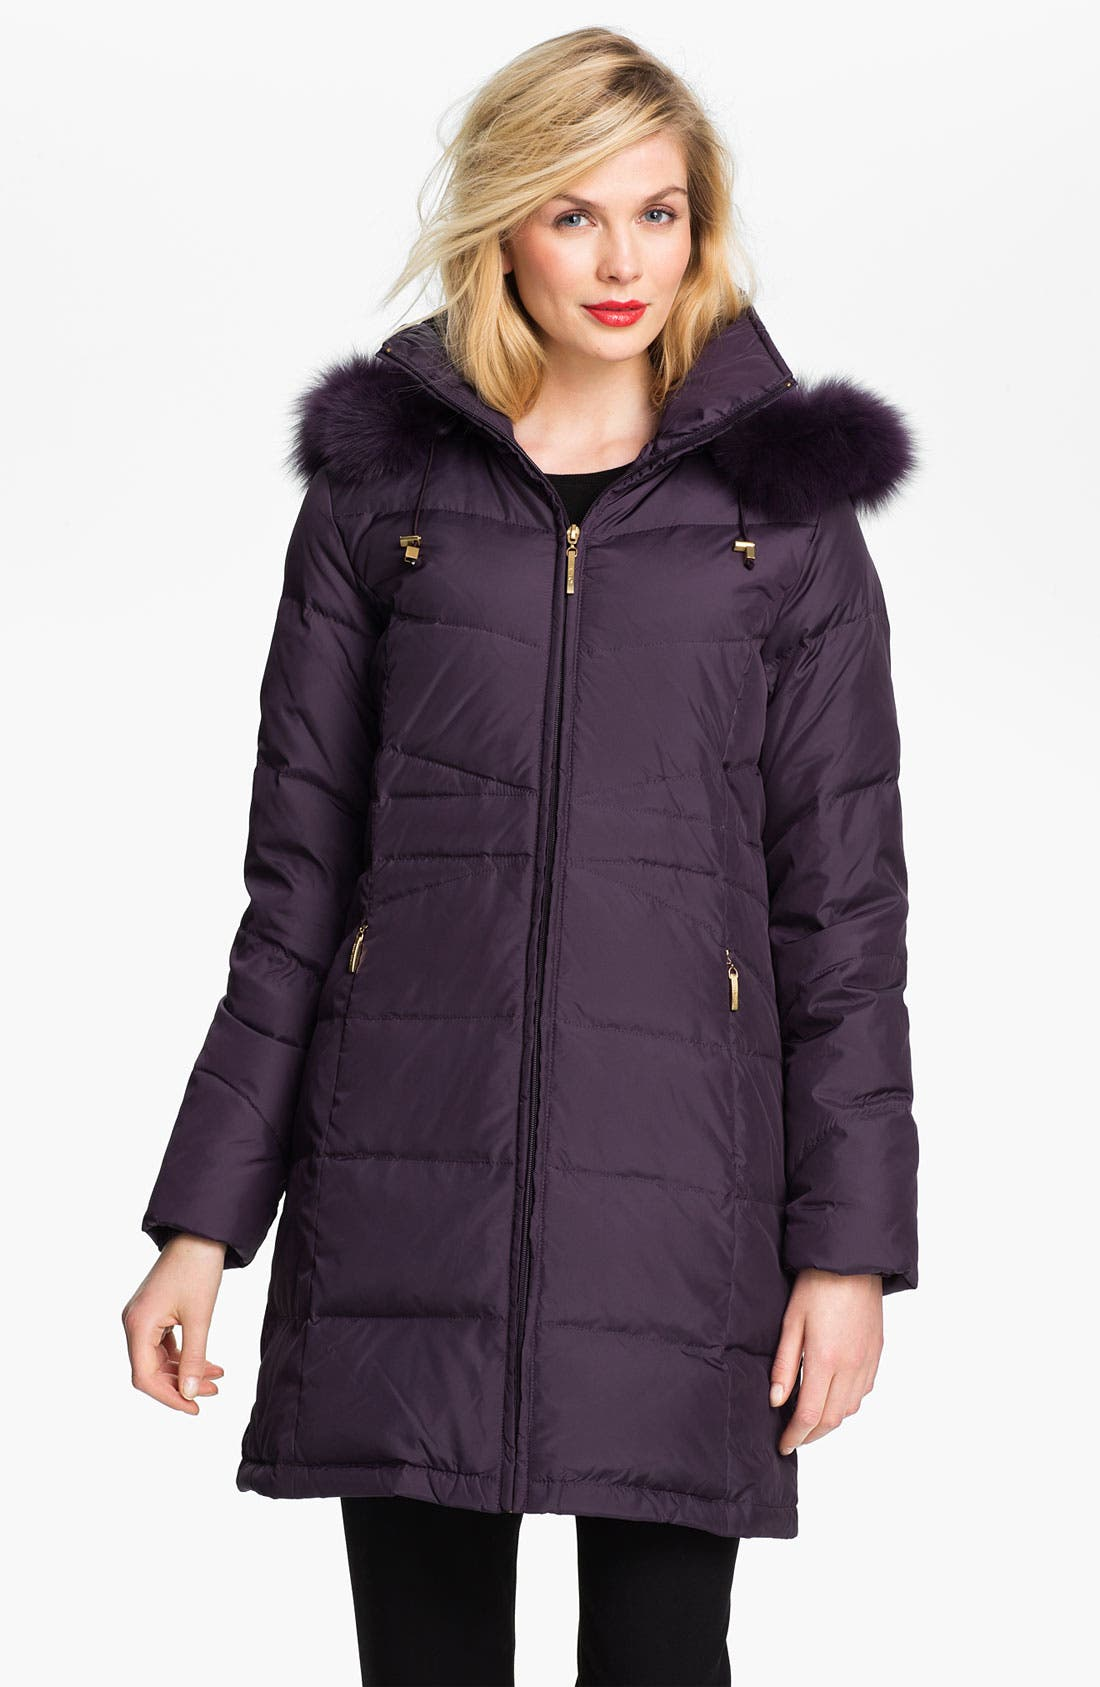 Alternate Image 1 Selected - Ellen Tracy Genuine Fox Fur Trim Down Coat (Nordstrom Exclusive)